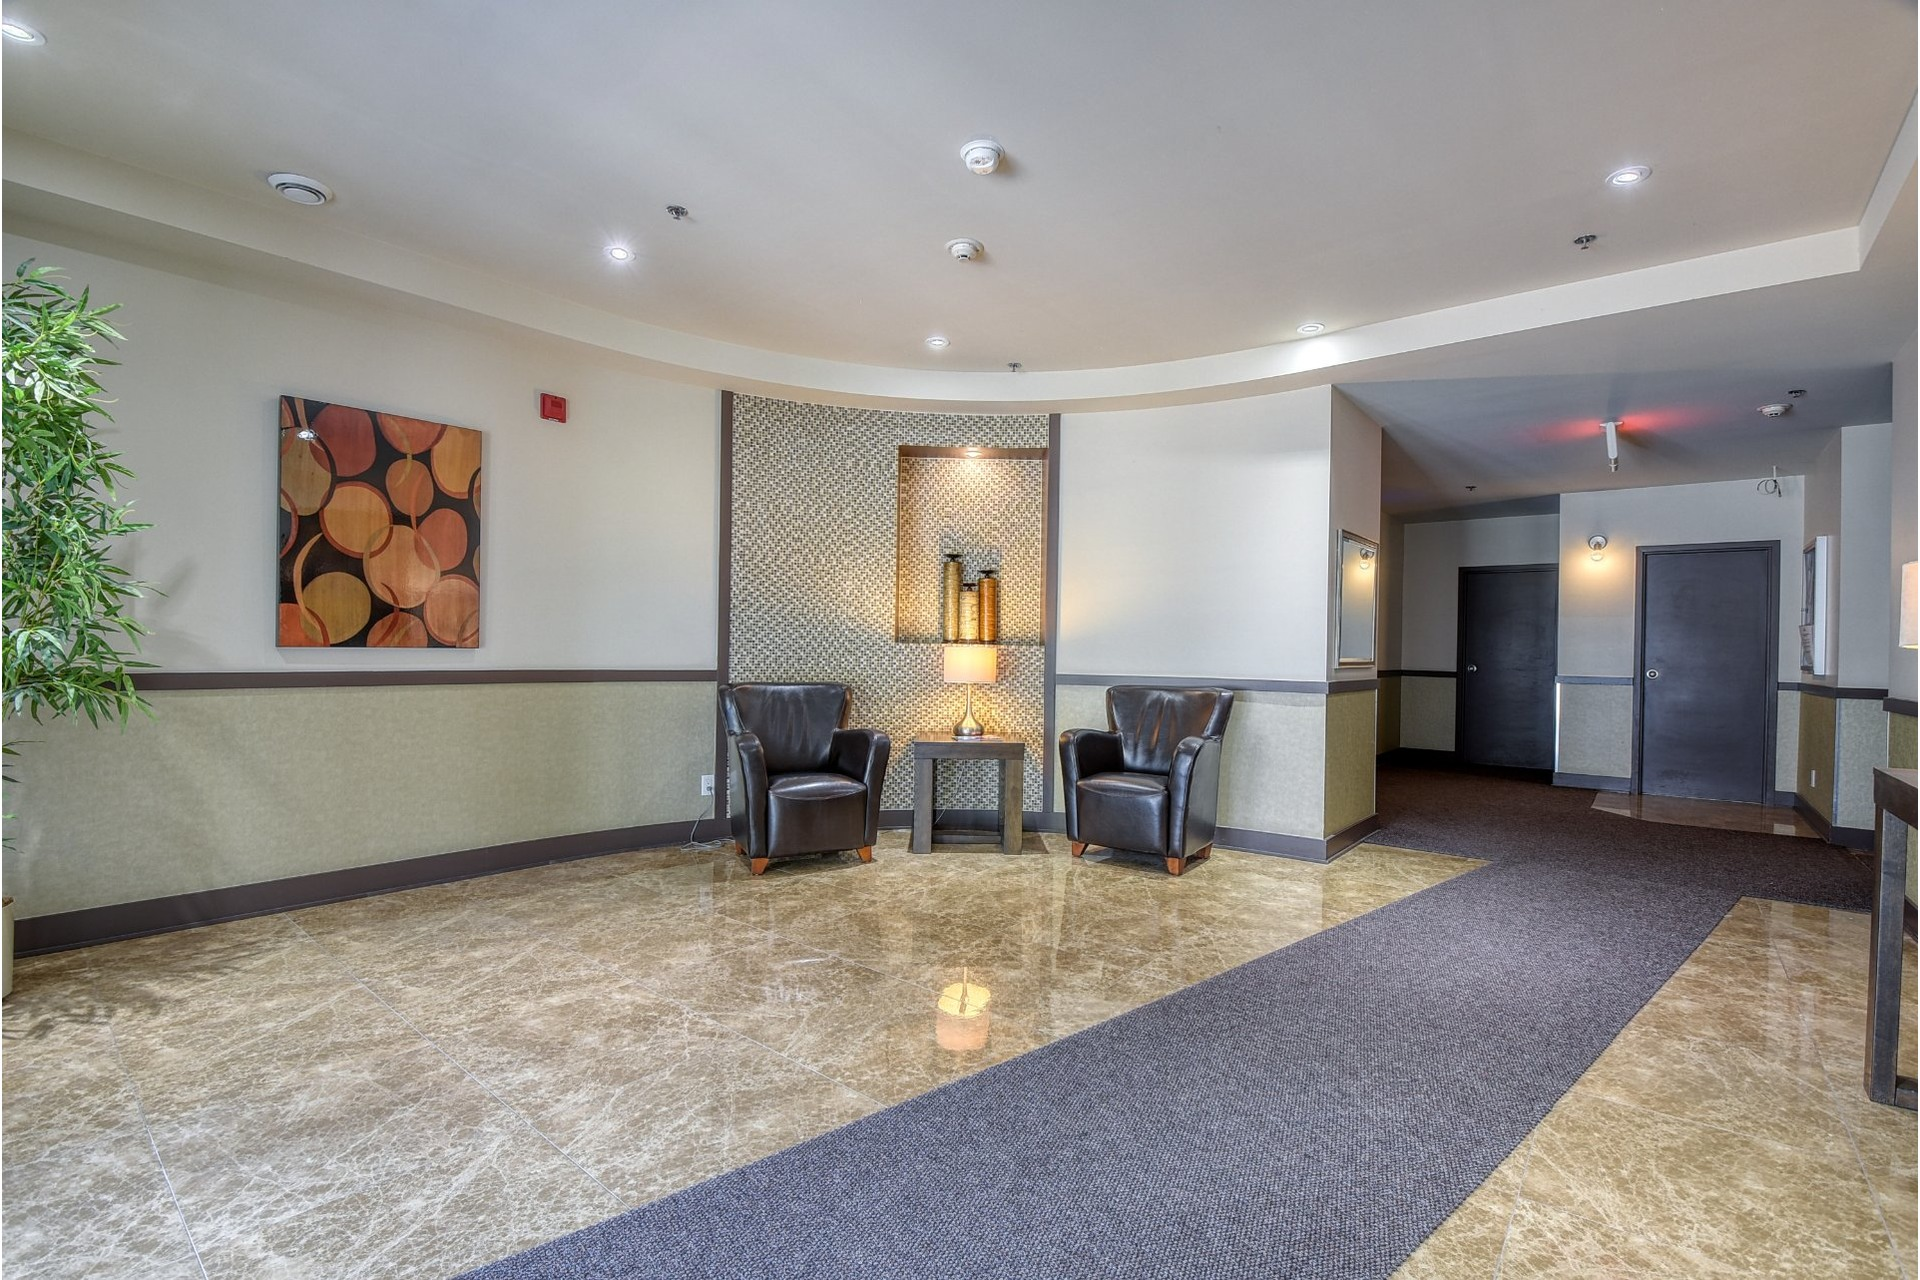 image 1 - Apartment For rent Boisbriand - 6 rooms